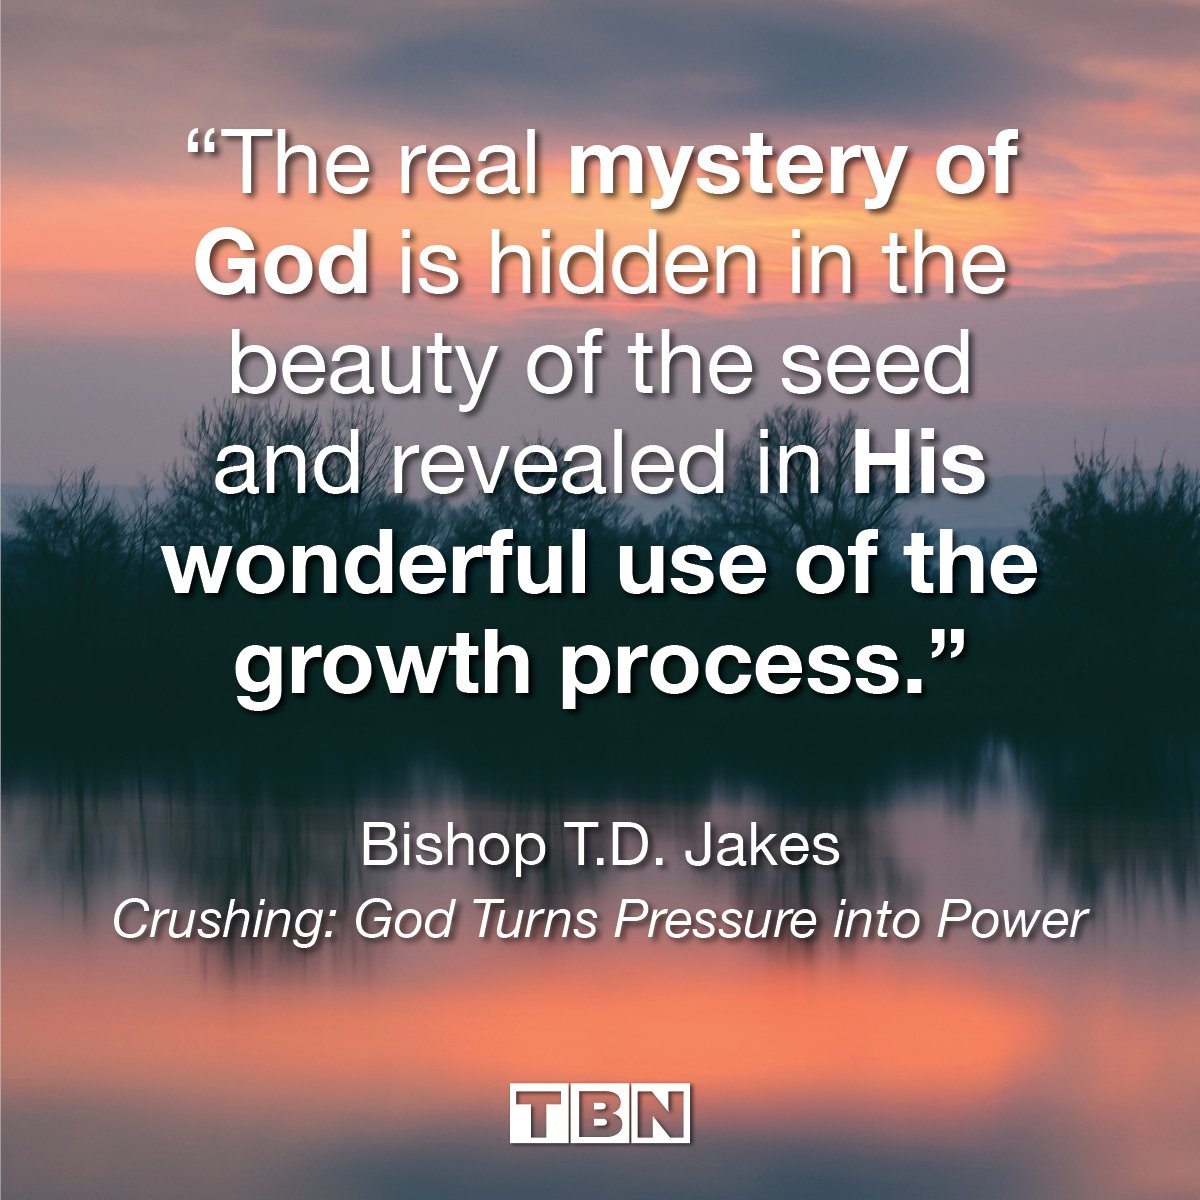 """""""The real mystery of God is hidden in the beauty of the seed and revealed in His wonderful use of the growth process."""" - Bishop T.D. Jakes, Crushing: God Turns Pressure into Power  #QOTD #quoteoftheday https://t.co/WBUkcM7r7o"""